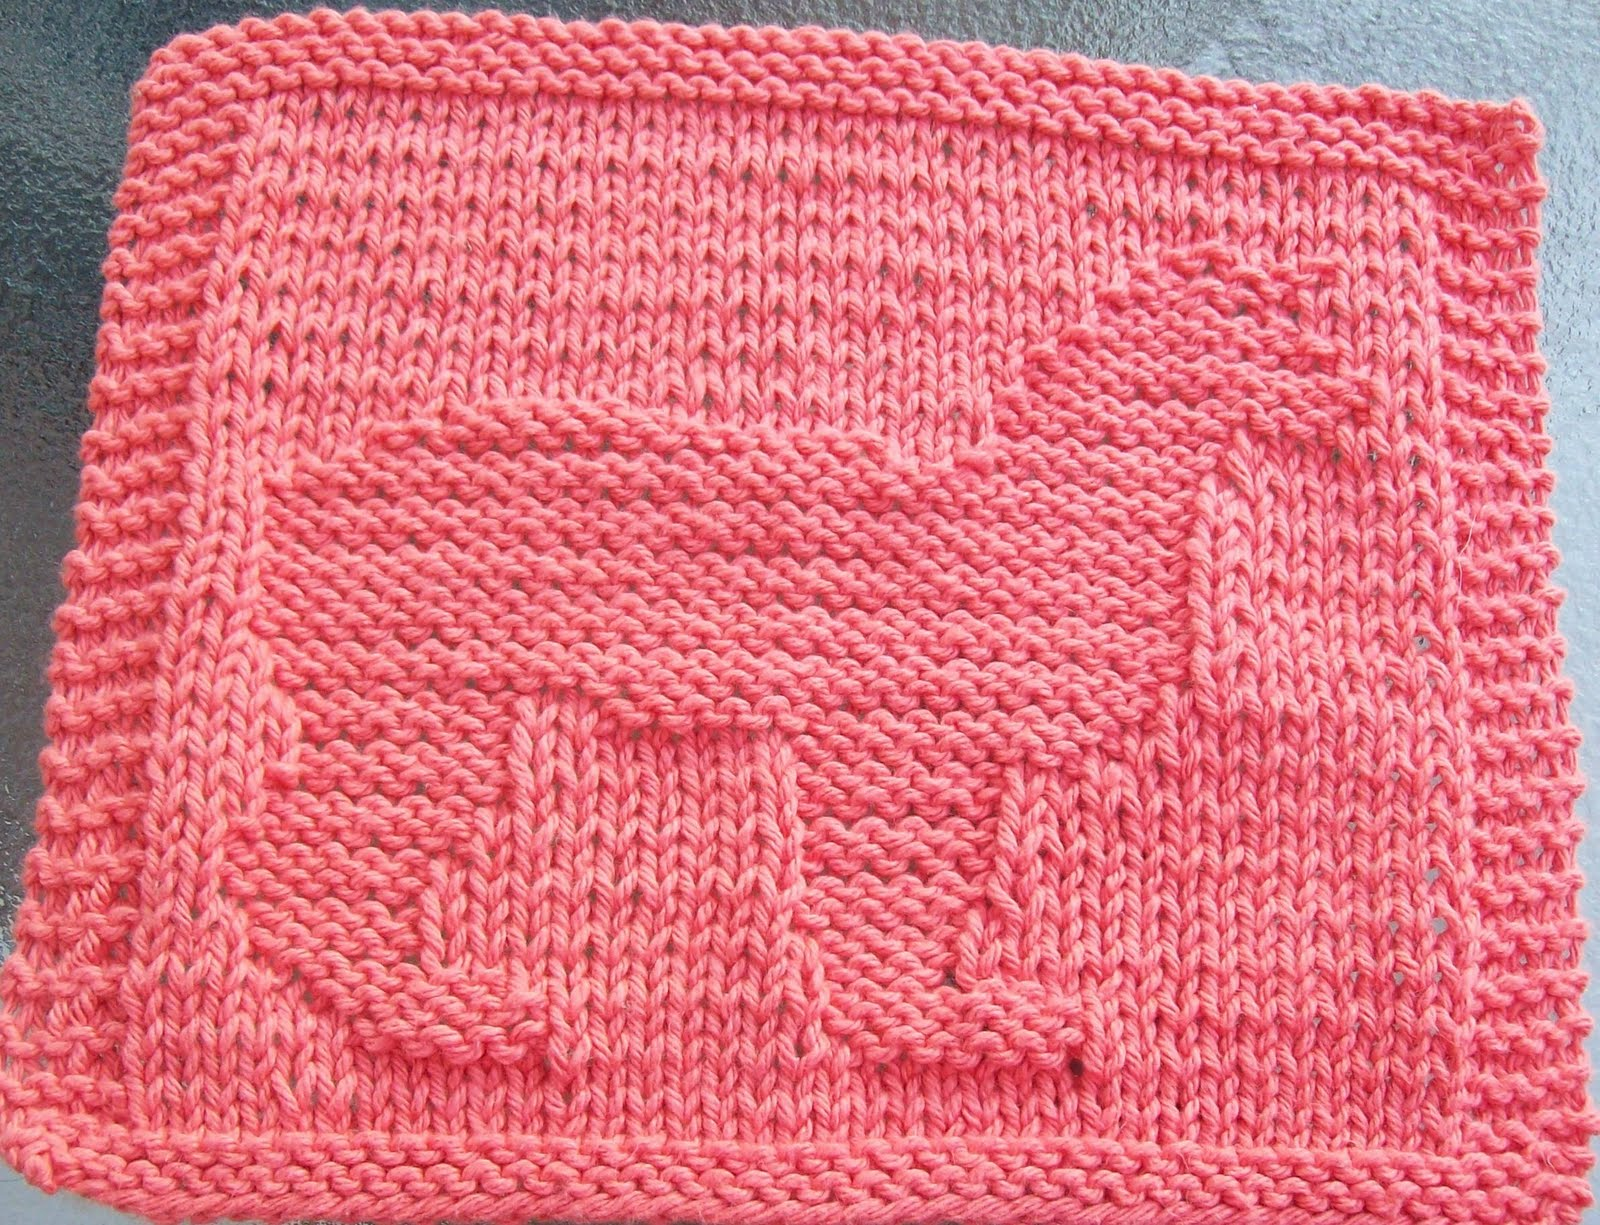 Alpaca Wool Knitting Patterns : DigKnitty Designs: Alpaca Knit Dishcloth Pattern